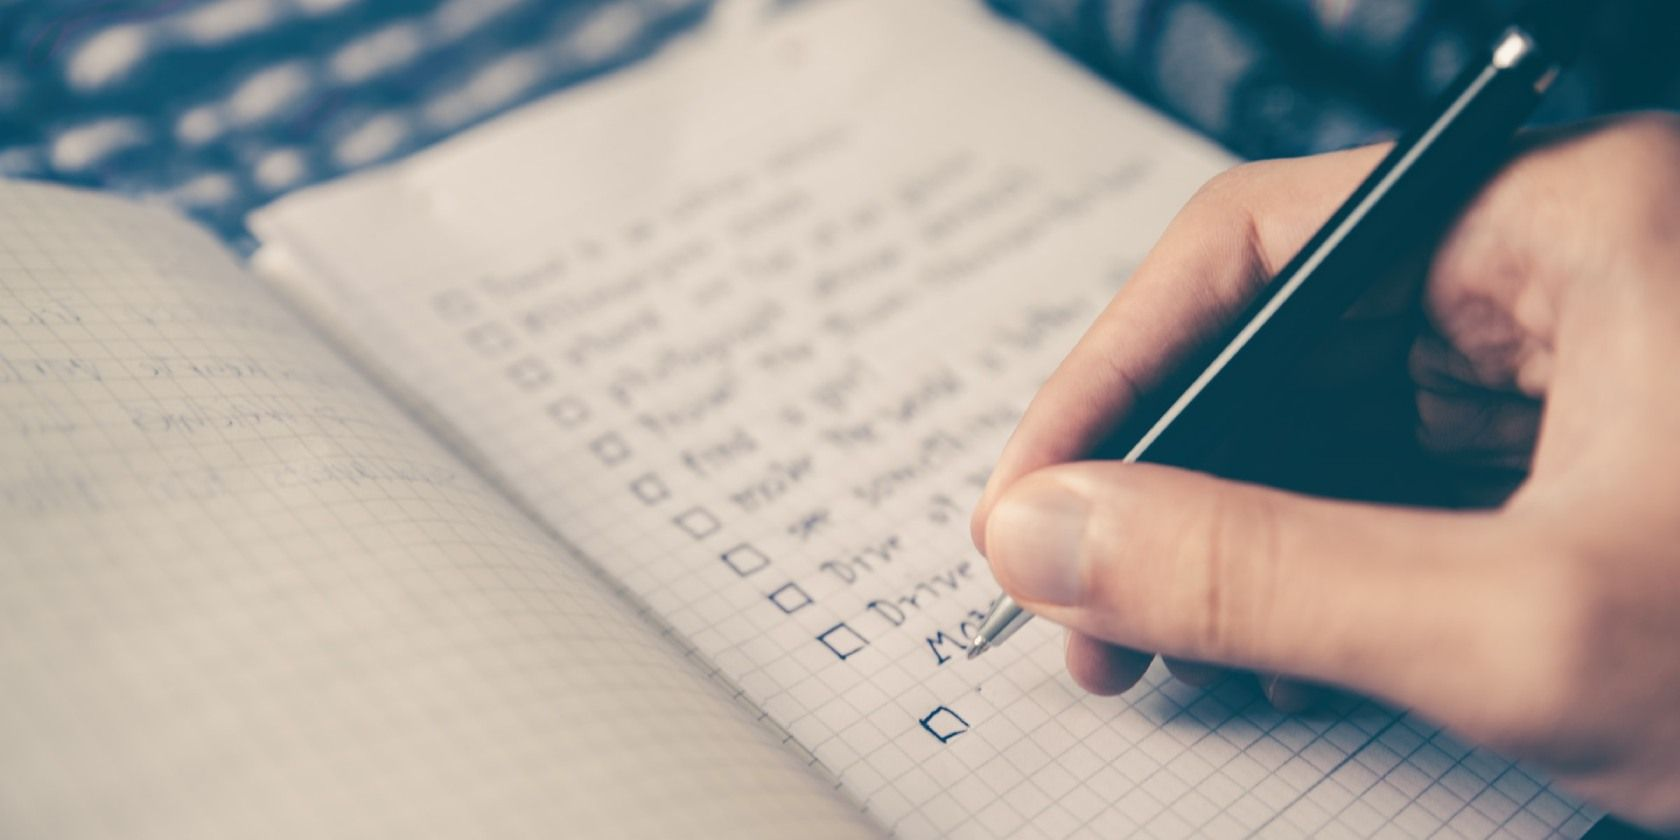 6 Uncomplicated To-Do Apps to Focus on Tasks and Get Things Done